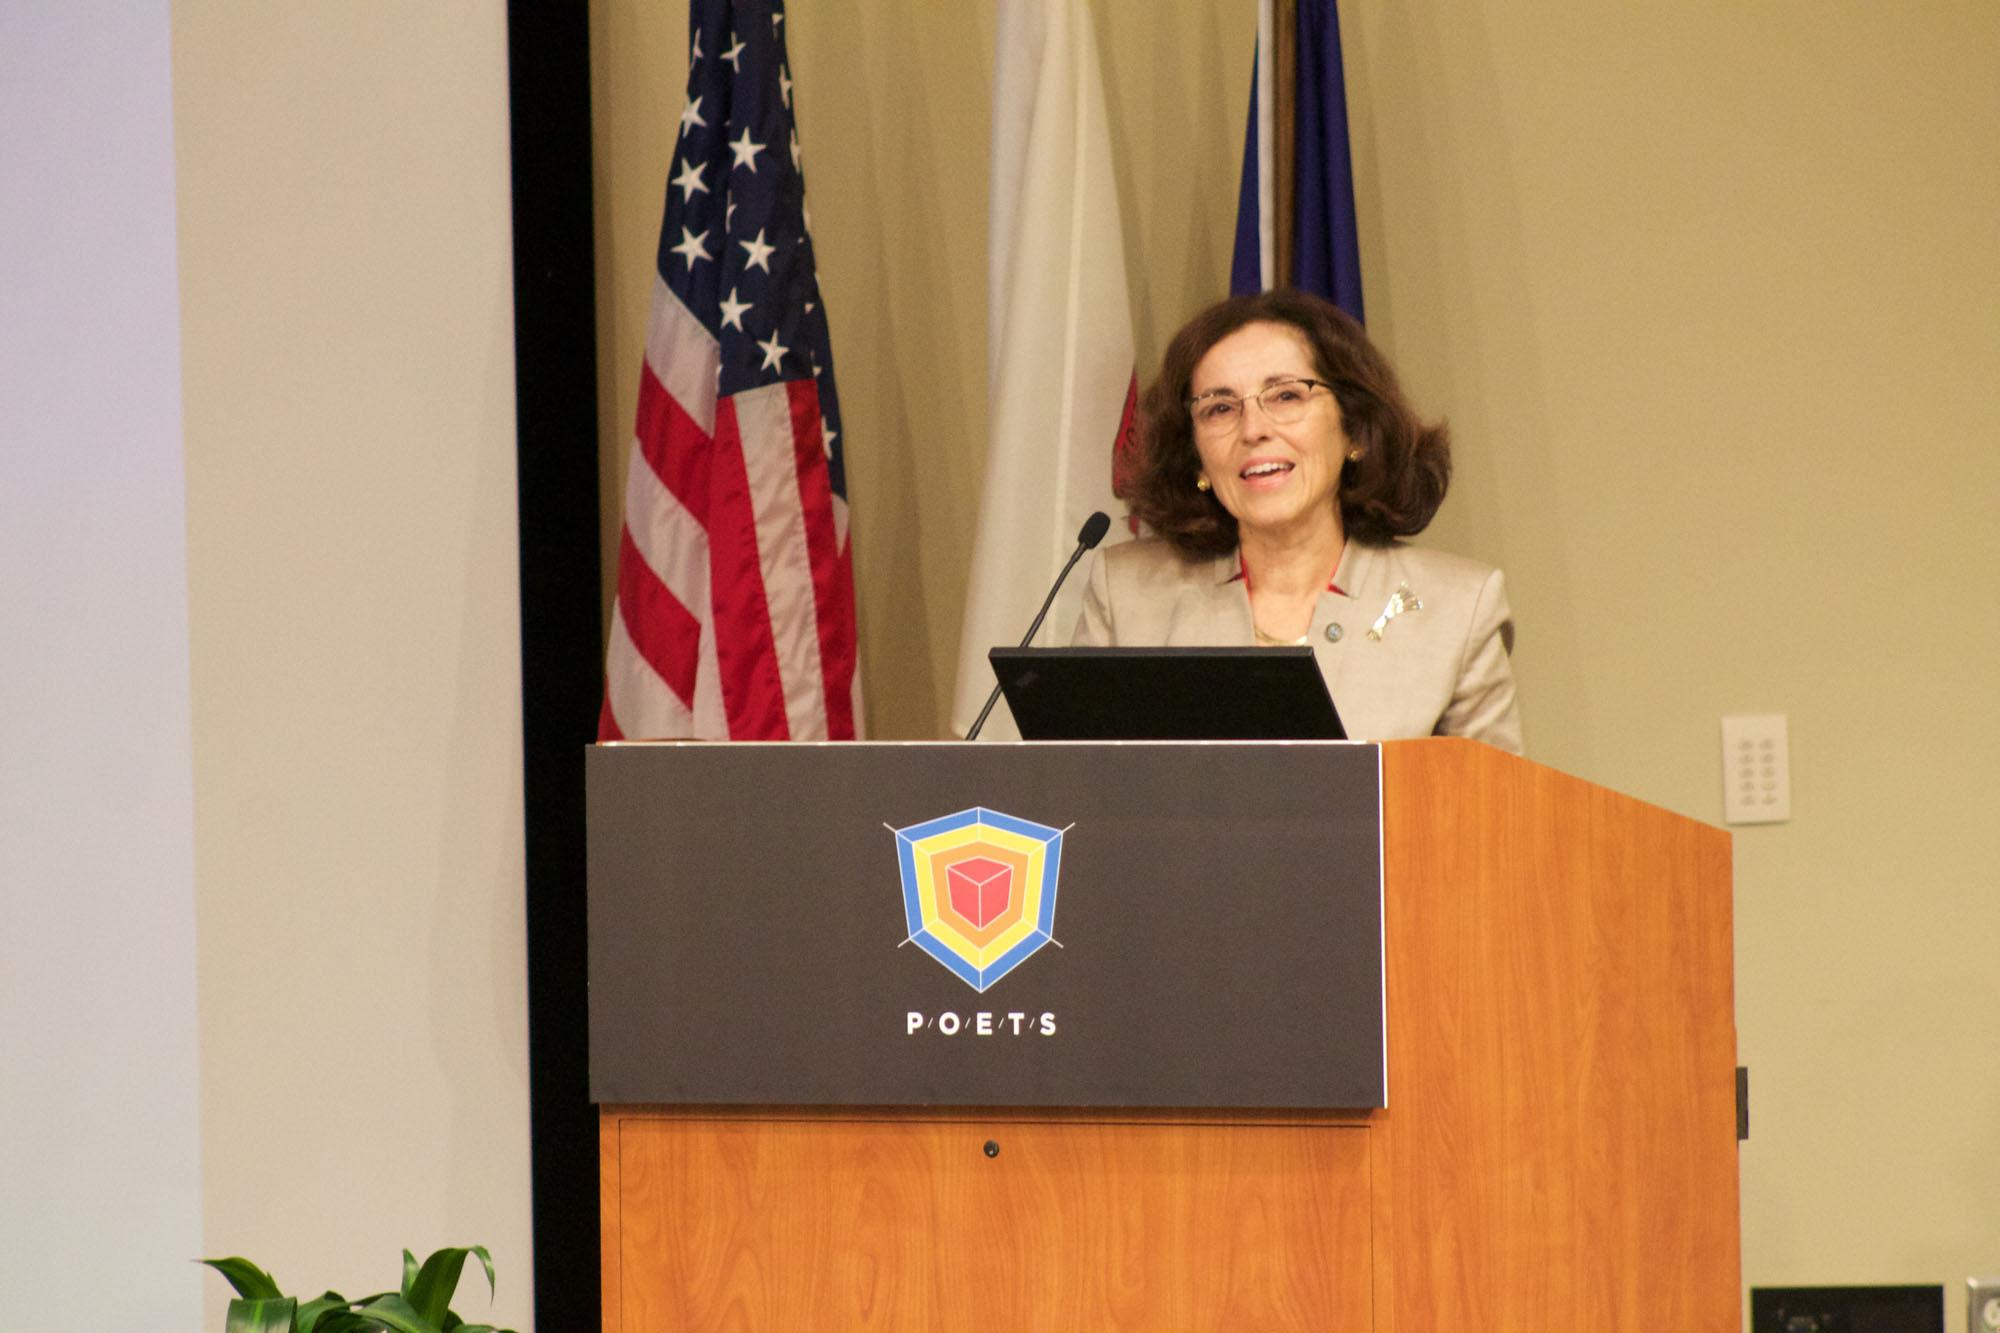 NSF Director Dr. France Cordova speaking about POETS, a new Engineering Research Center on Thursday, October 15.